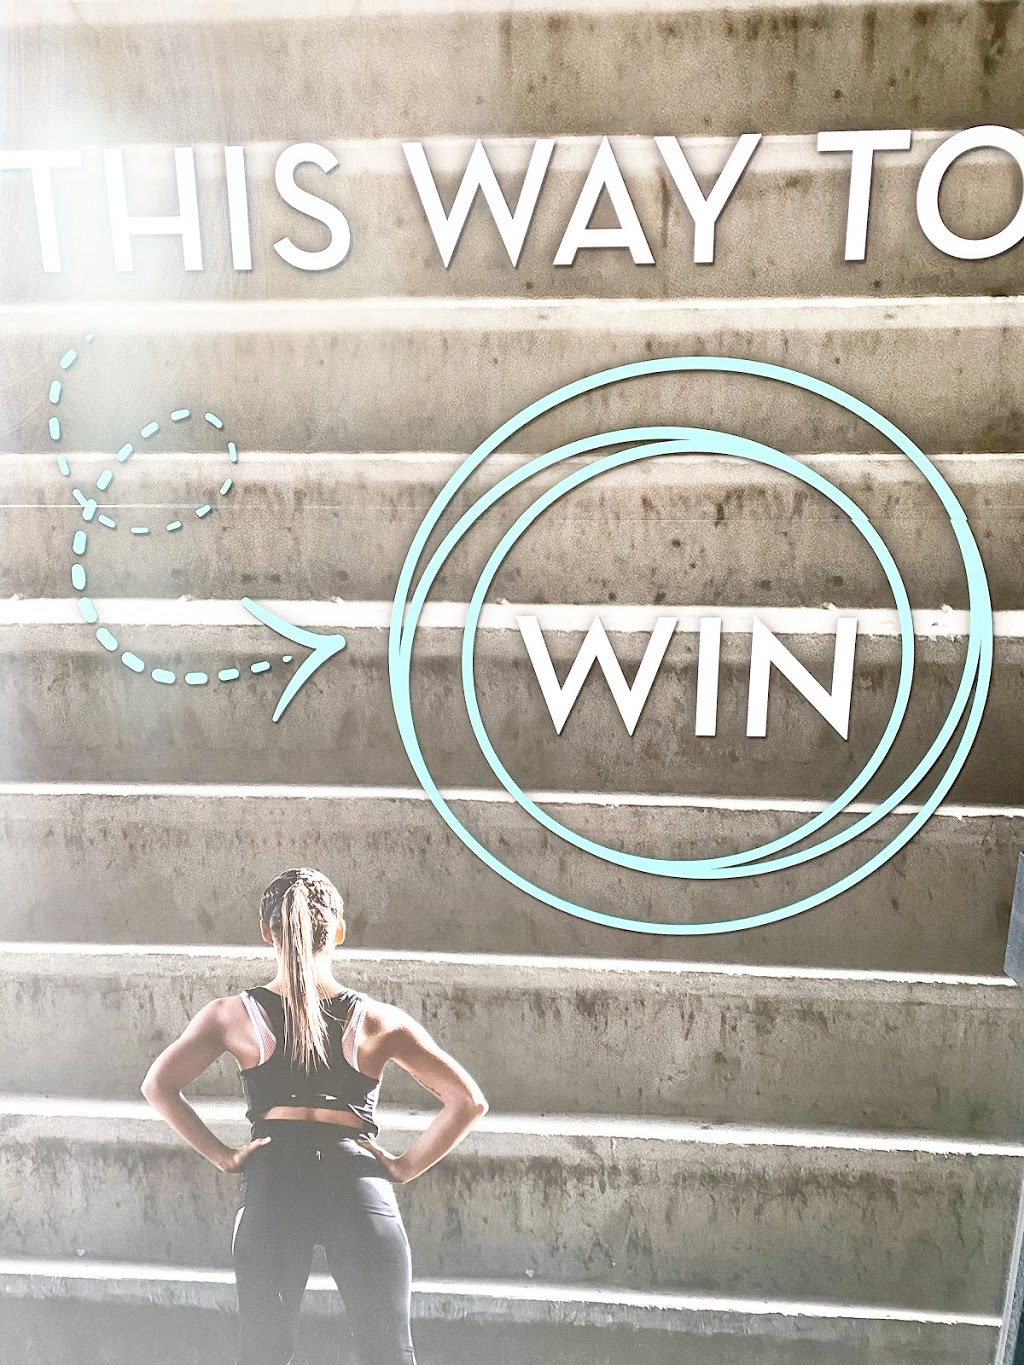 WIN...altra Health Clinic | health | 160 Hwy 20 W, Fonthill, ON L0S 1E5, Canada | 2898979454 OR +1 289-897-9454